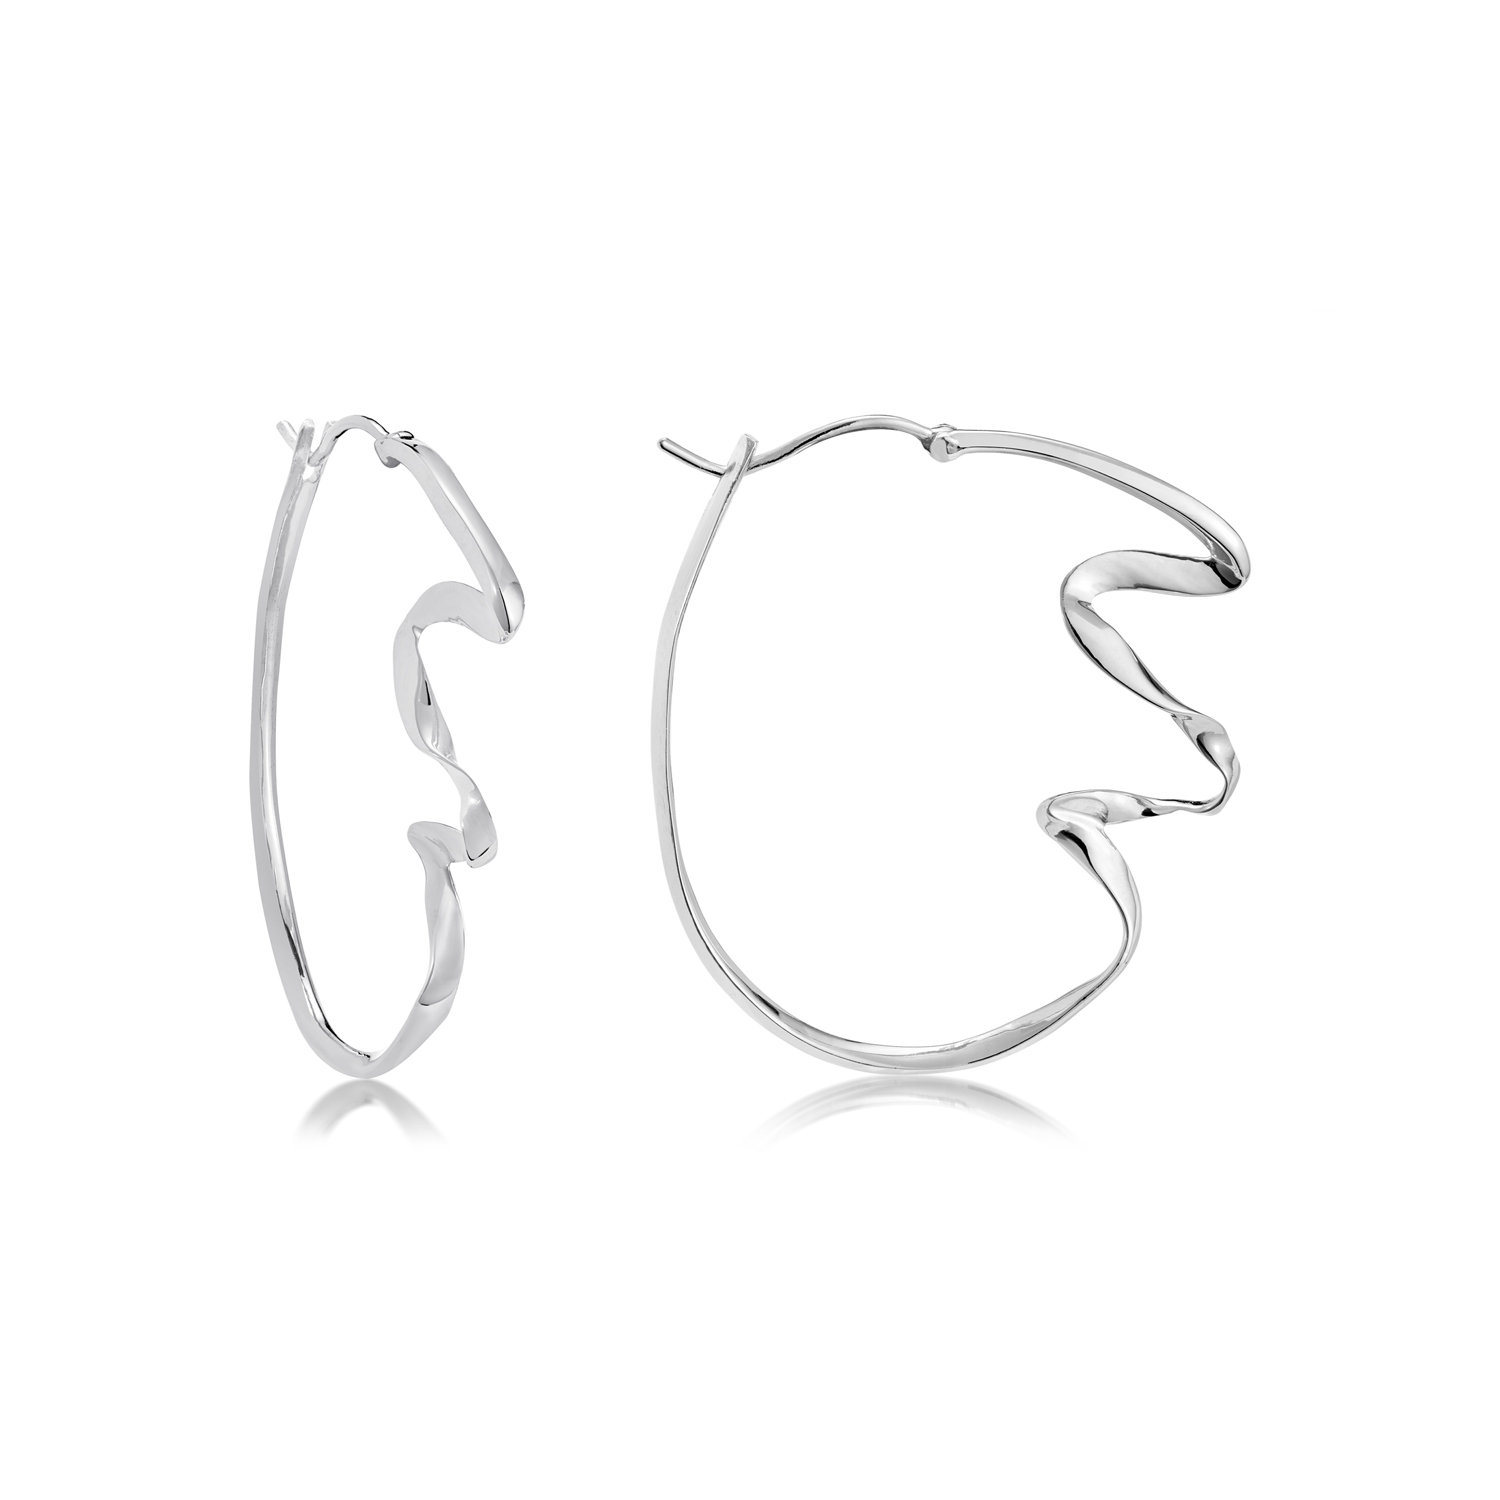 WAVE LARGE HOOP EARRINGS